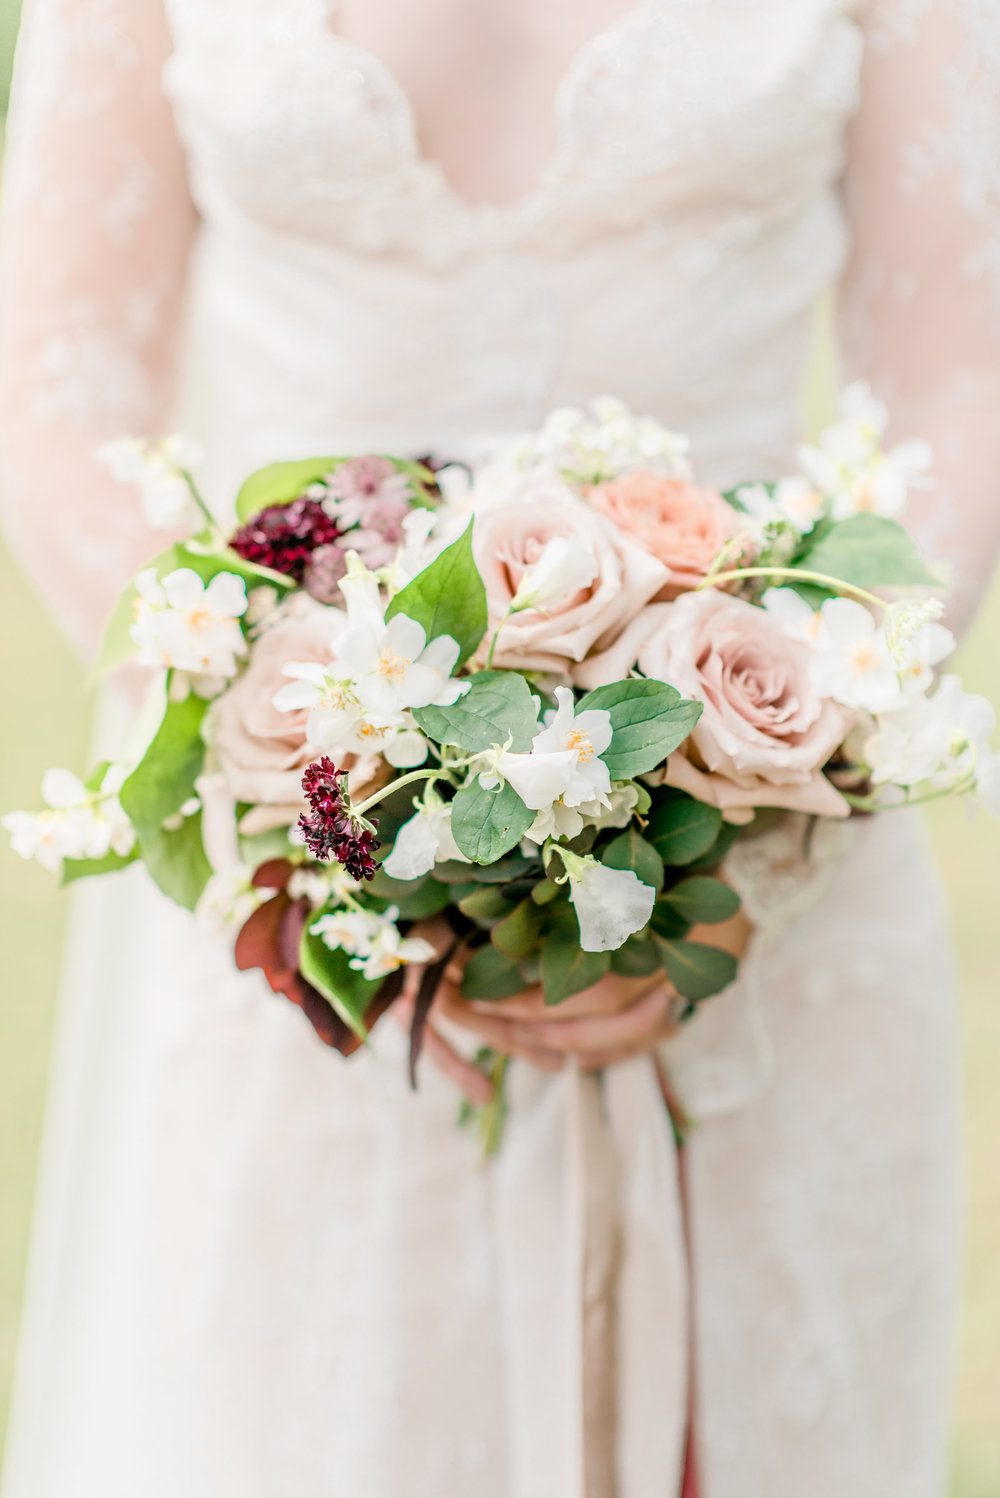 The Timeless Stylist-Elegant and Romantic Wedding Styling-Pink and Red Wedding Bouquet